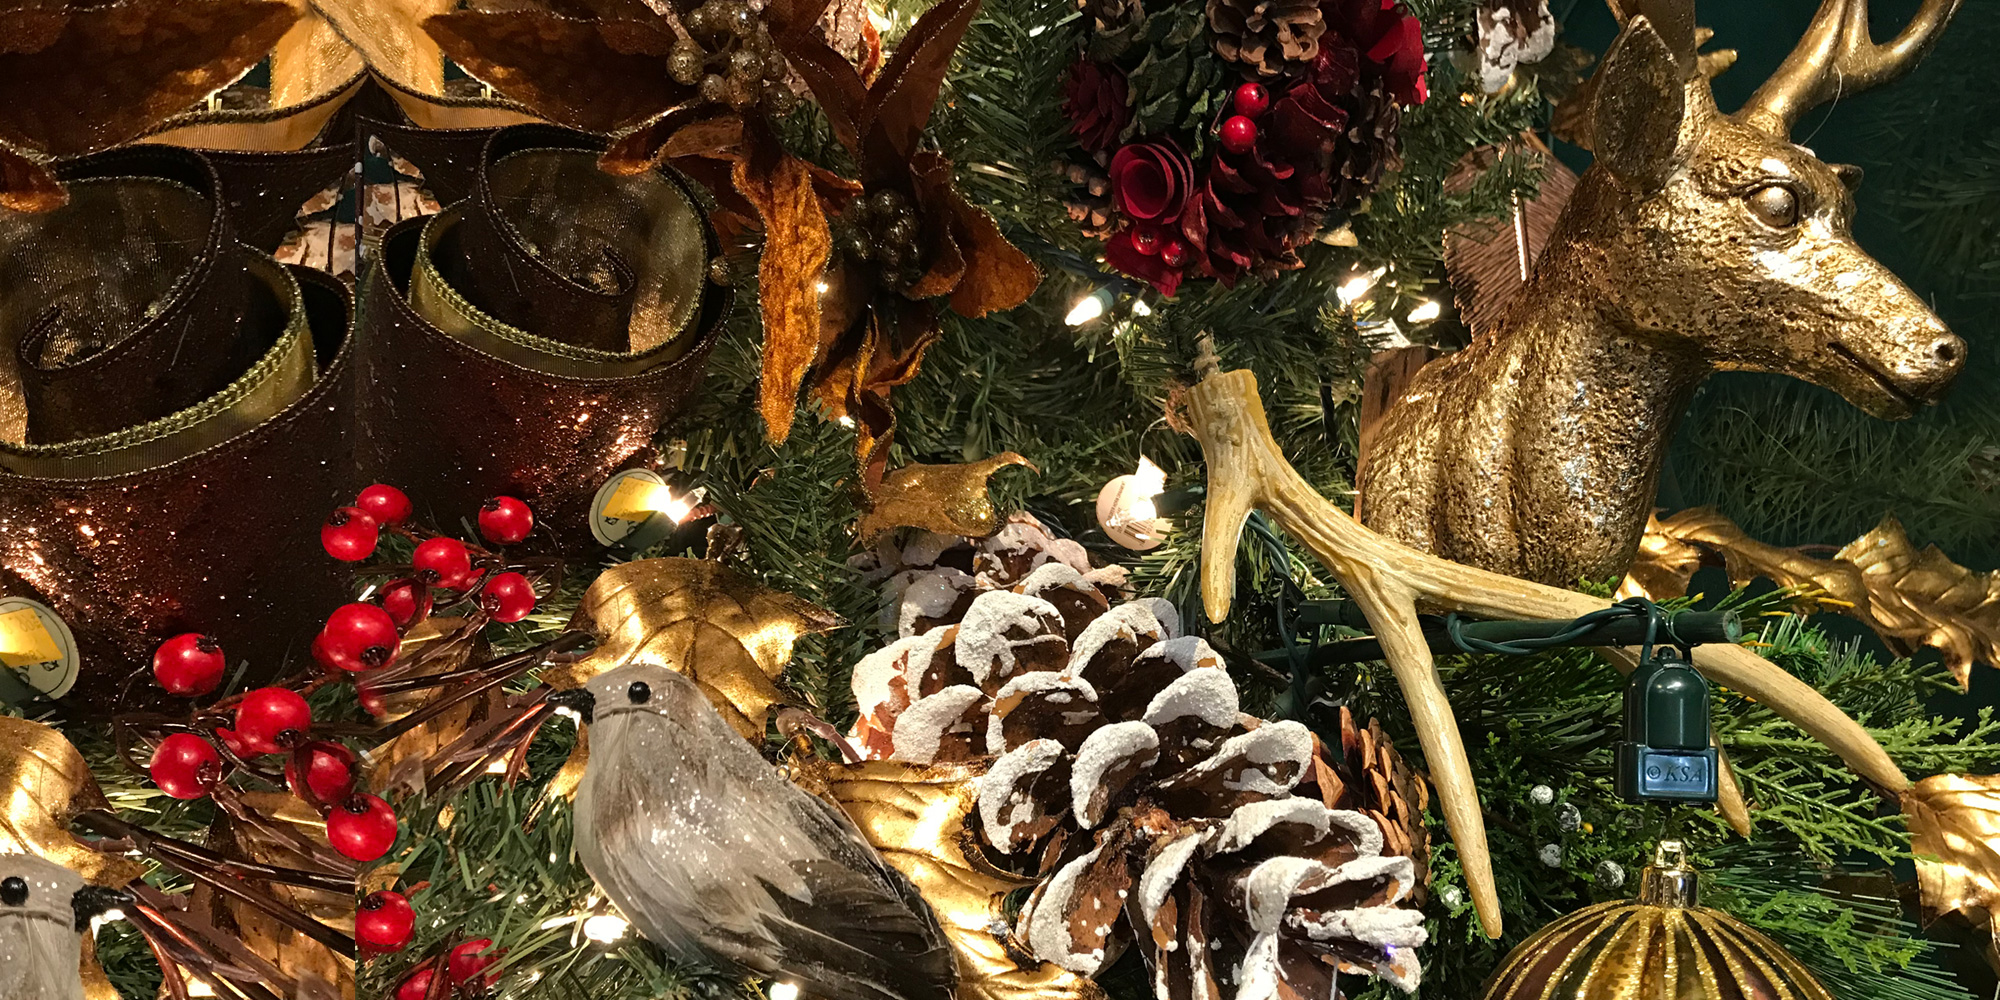 Pine cones and reindeer ornaments